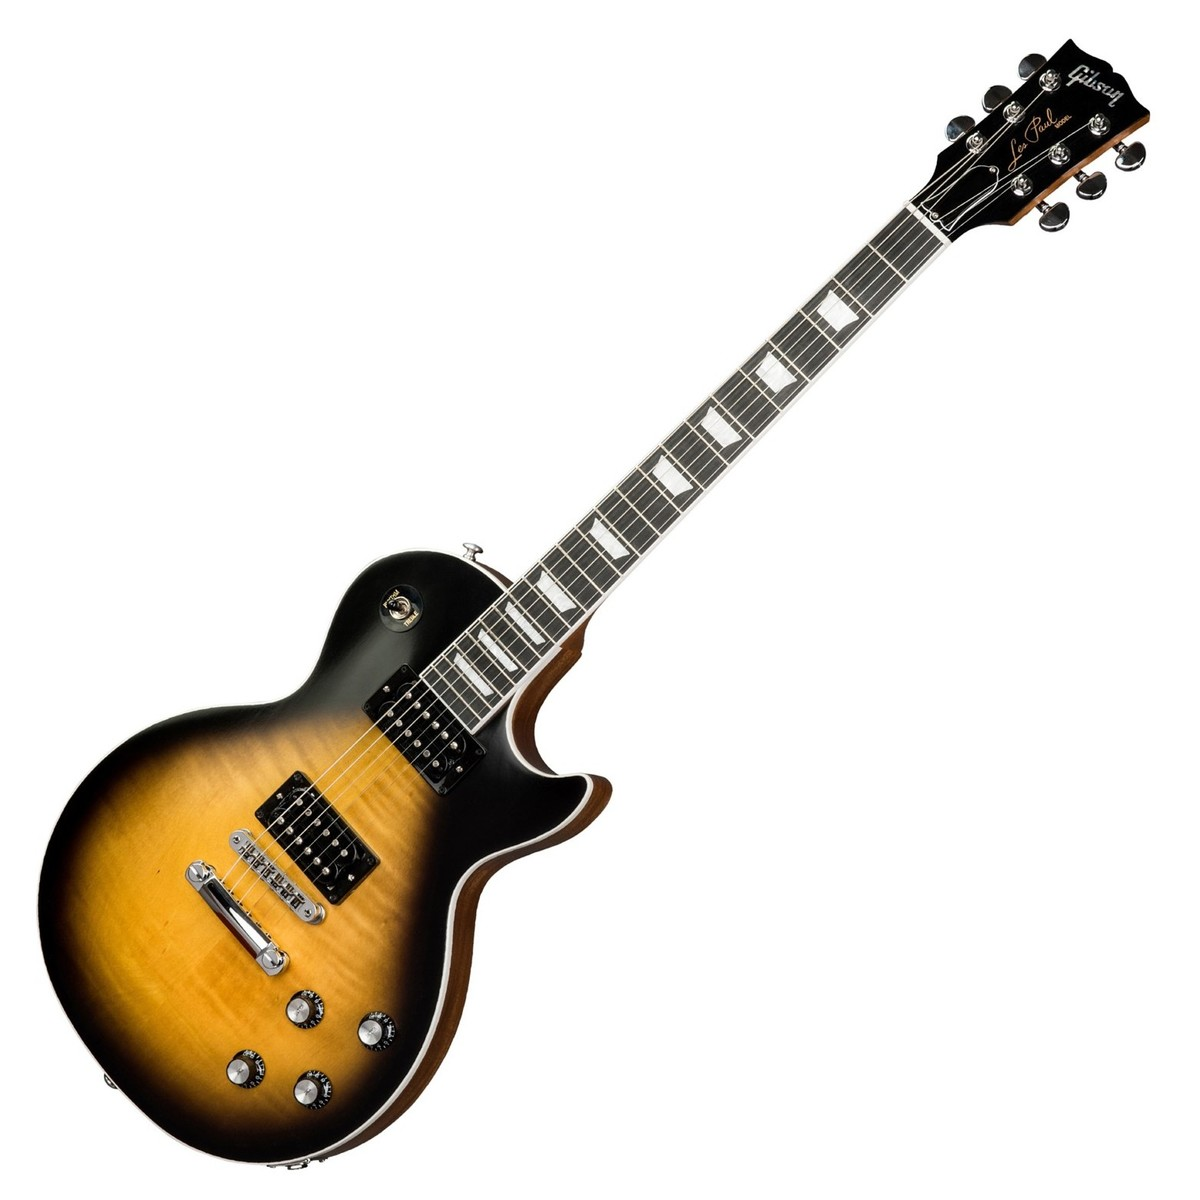 Punch Home Design Studio Help Gibson Les Paul Signature Player Plus 2018 Satin Vintage